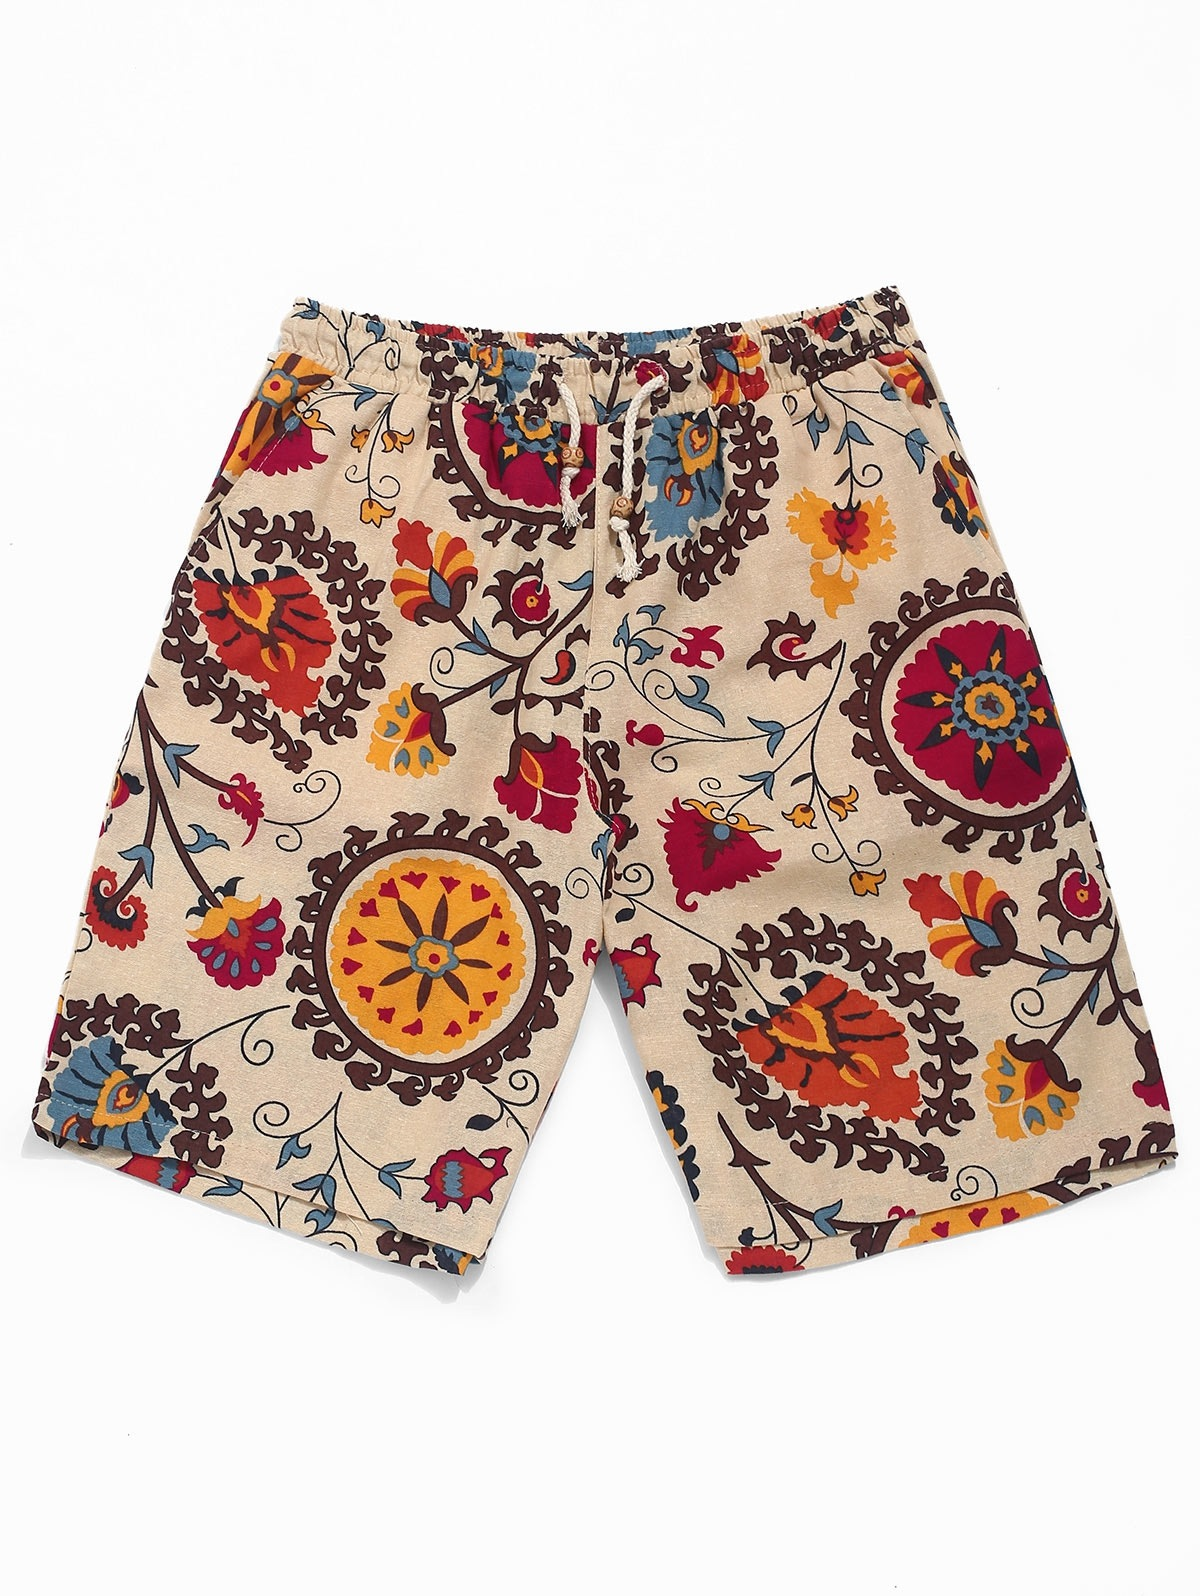 Ethnic Tribal Floral Print Board Shorts